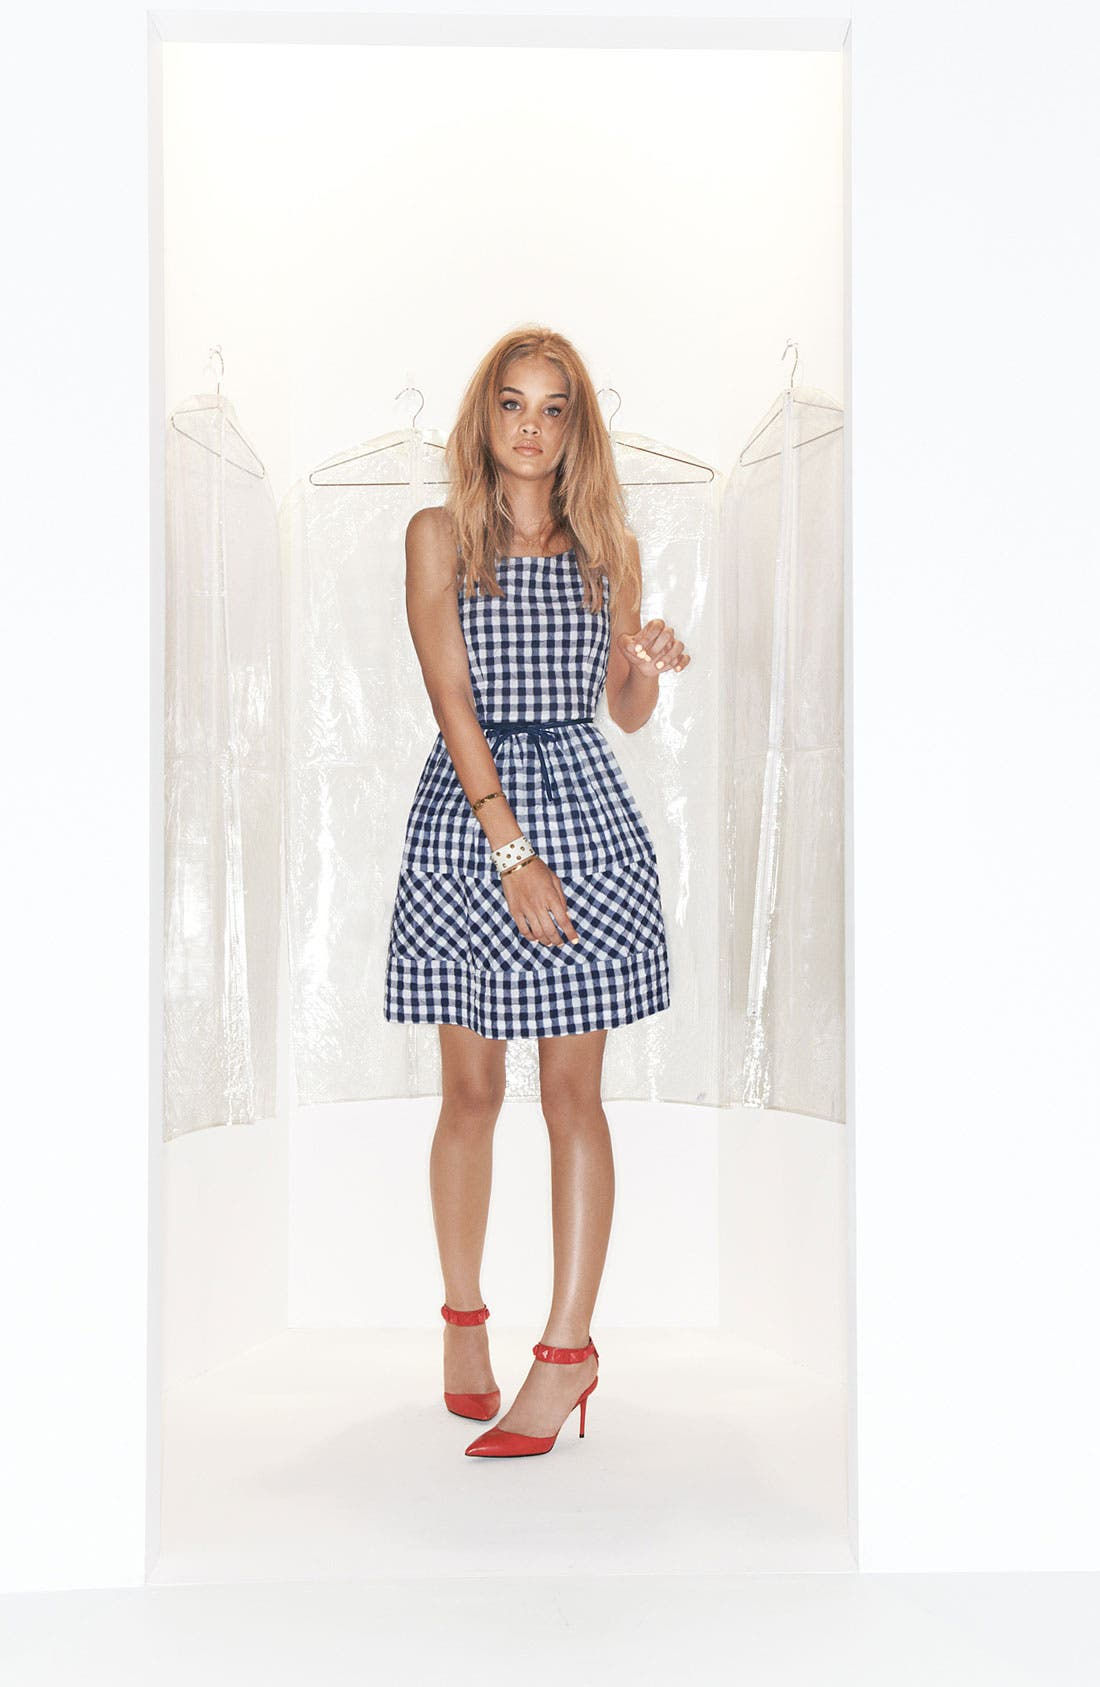 Alternate Image 1 Selected - Taylor Dresses Dress & Accessories